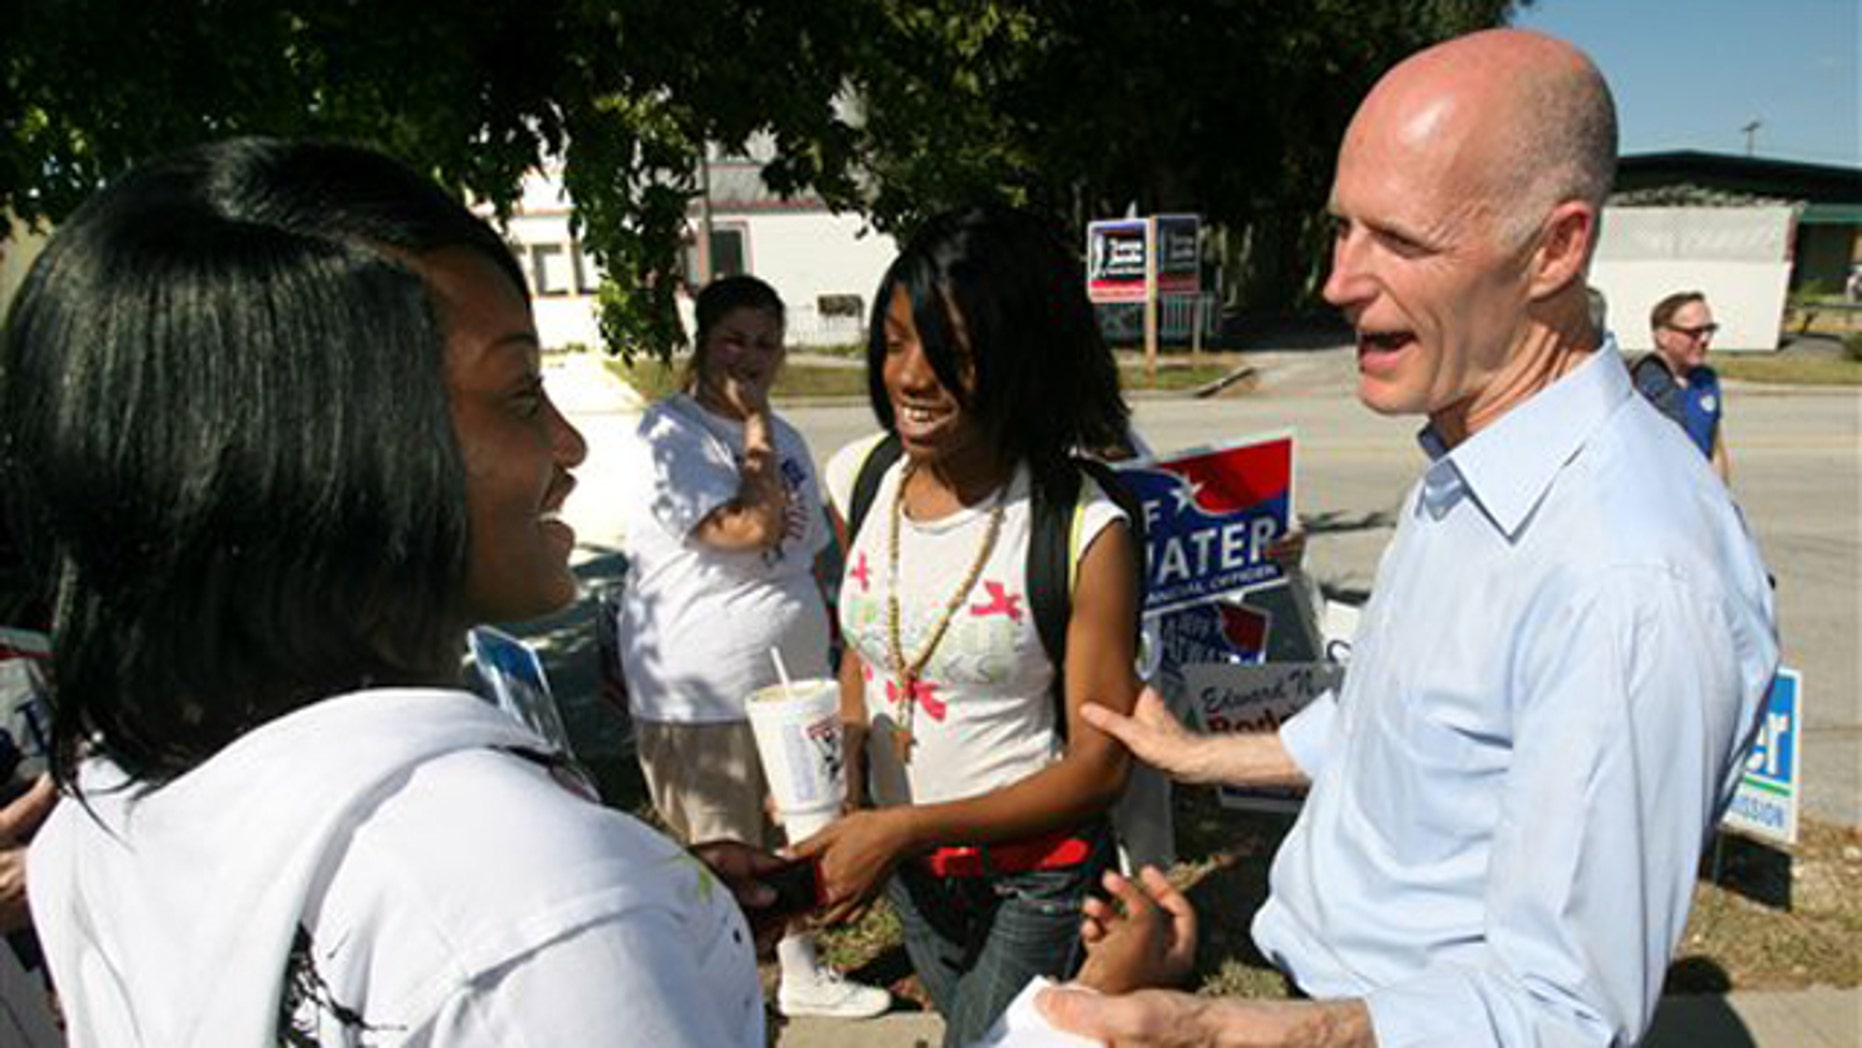 Republican gubernatorial nominee Rick Scott talks to young supporters during a campaign stop at the VFW post in Apopka, Fla., on the first day of early voting Oct. 18. (AP Photo)